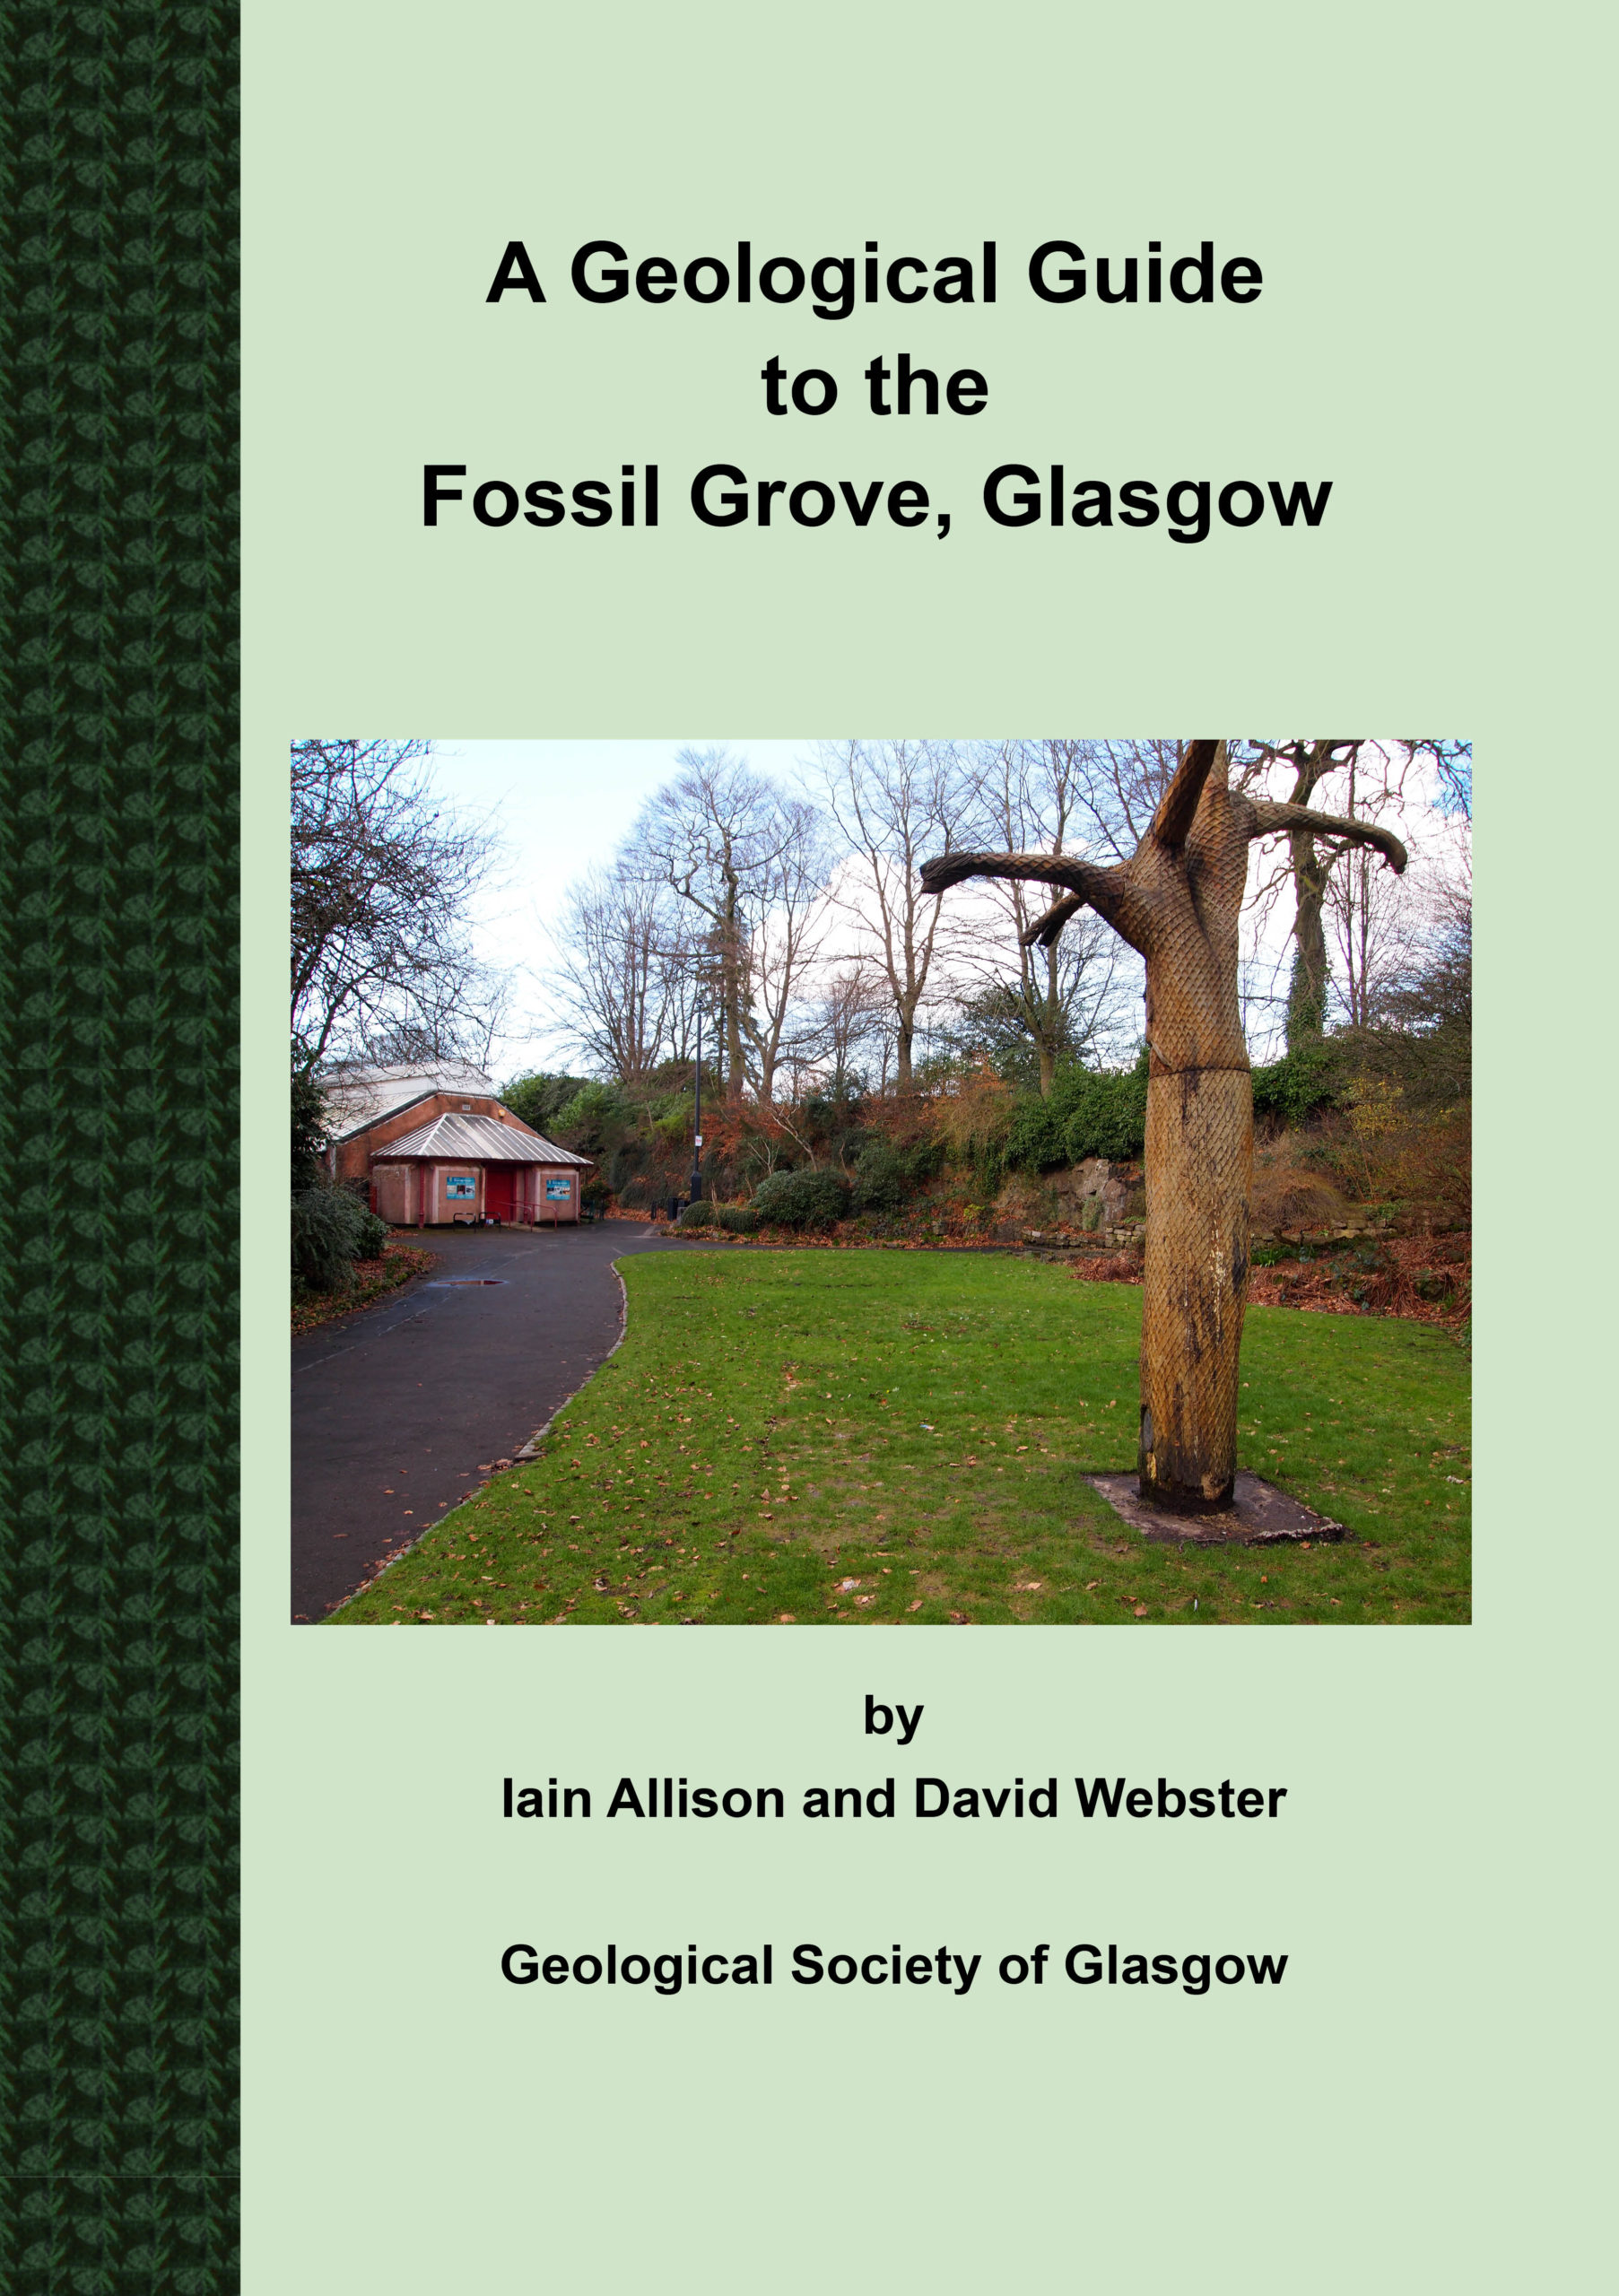 A Geological Guide to the Fossil Grove, Glasgow